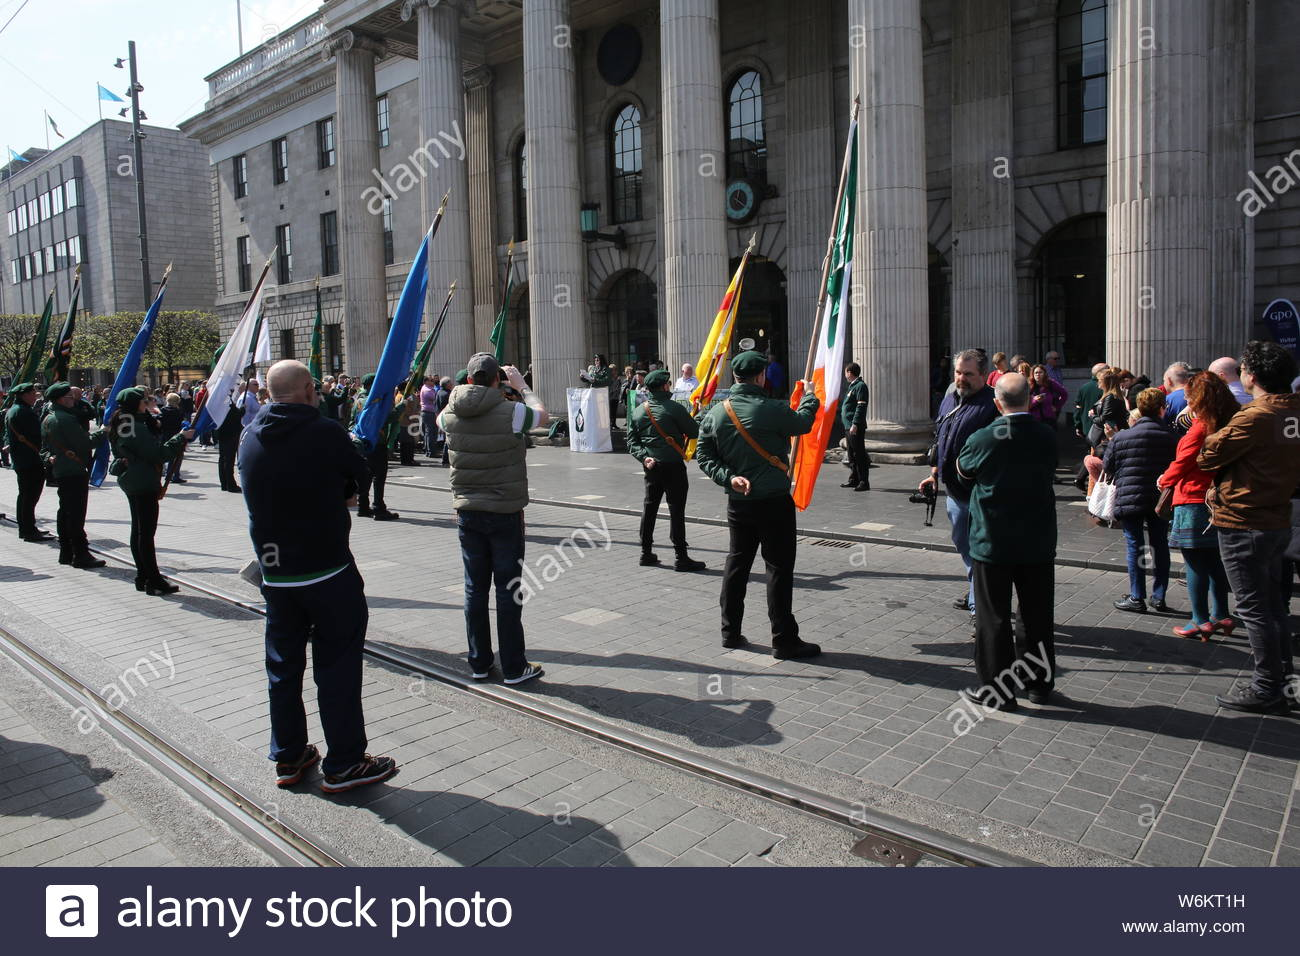 A military parade has taken place in Dublin to commemorate the 1916 Rising. Activists in military style uniform marched through Dublin followed by a s Stock Photo